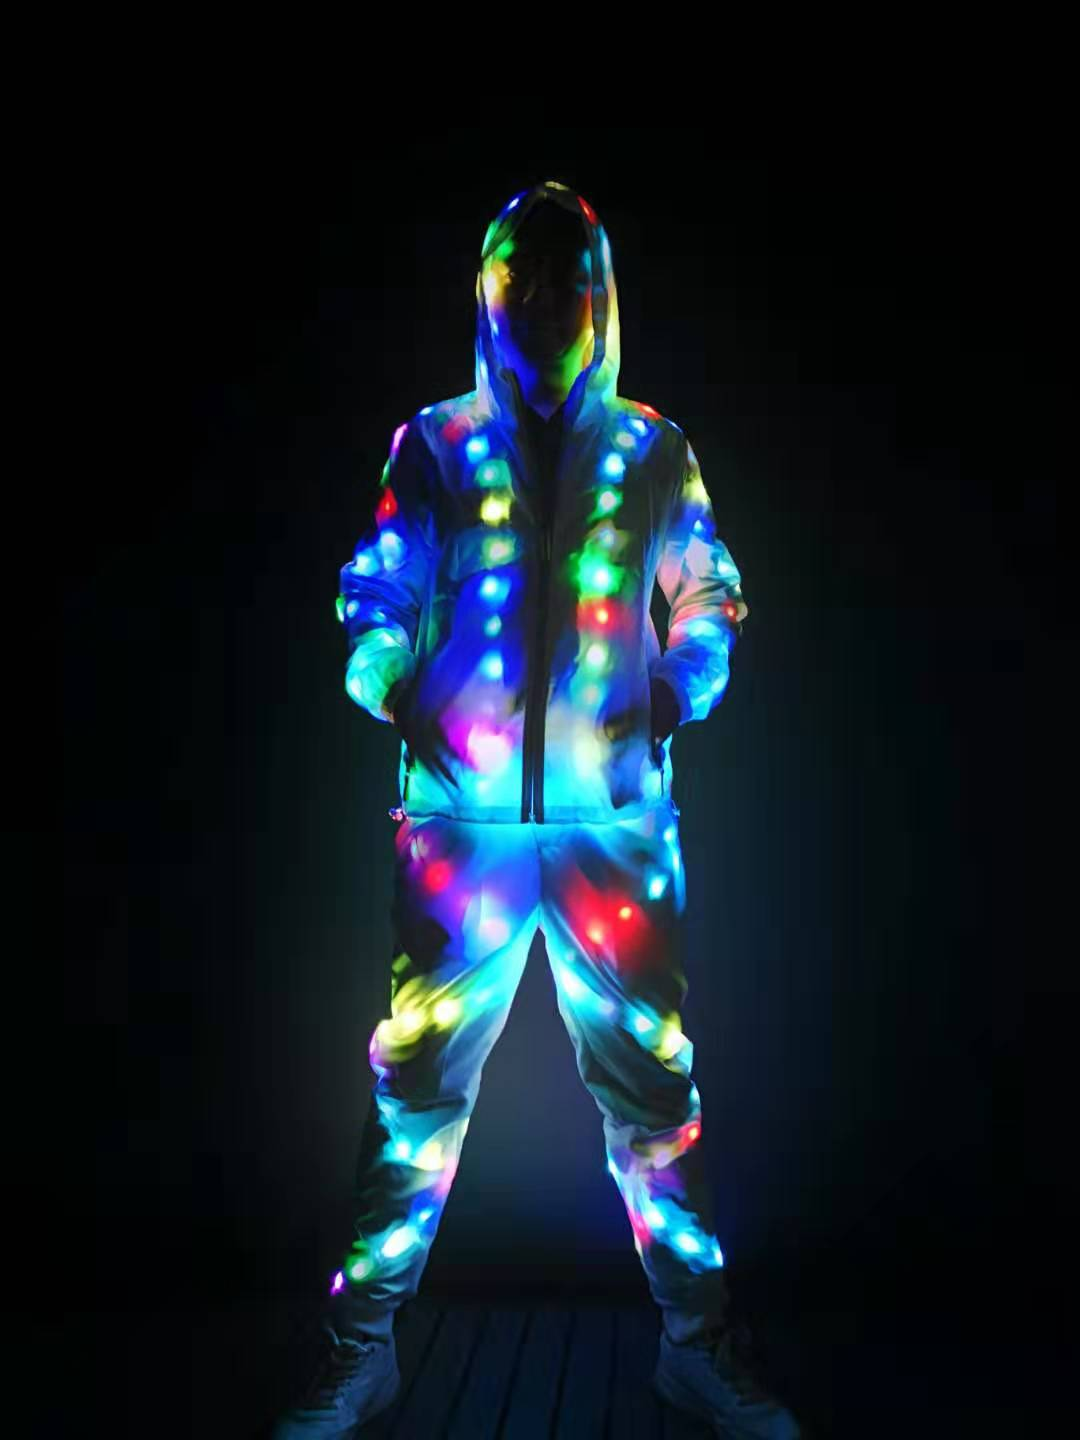 Led Light Jacket Pants Dj Party Club Sports Wear Led Lighting Clothes Colorful Luminous Costume Flash Led Jacket Dance Costumes Buy Led Luminous Jacket Led Clothing Led Costume Product On Alibaba Com